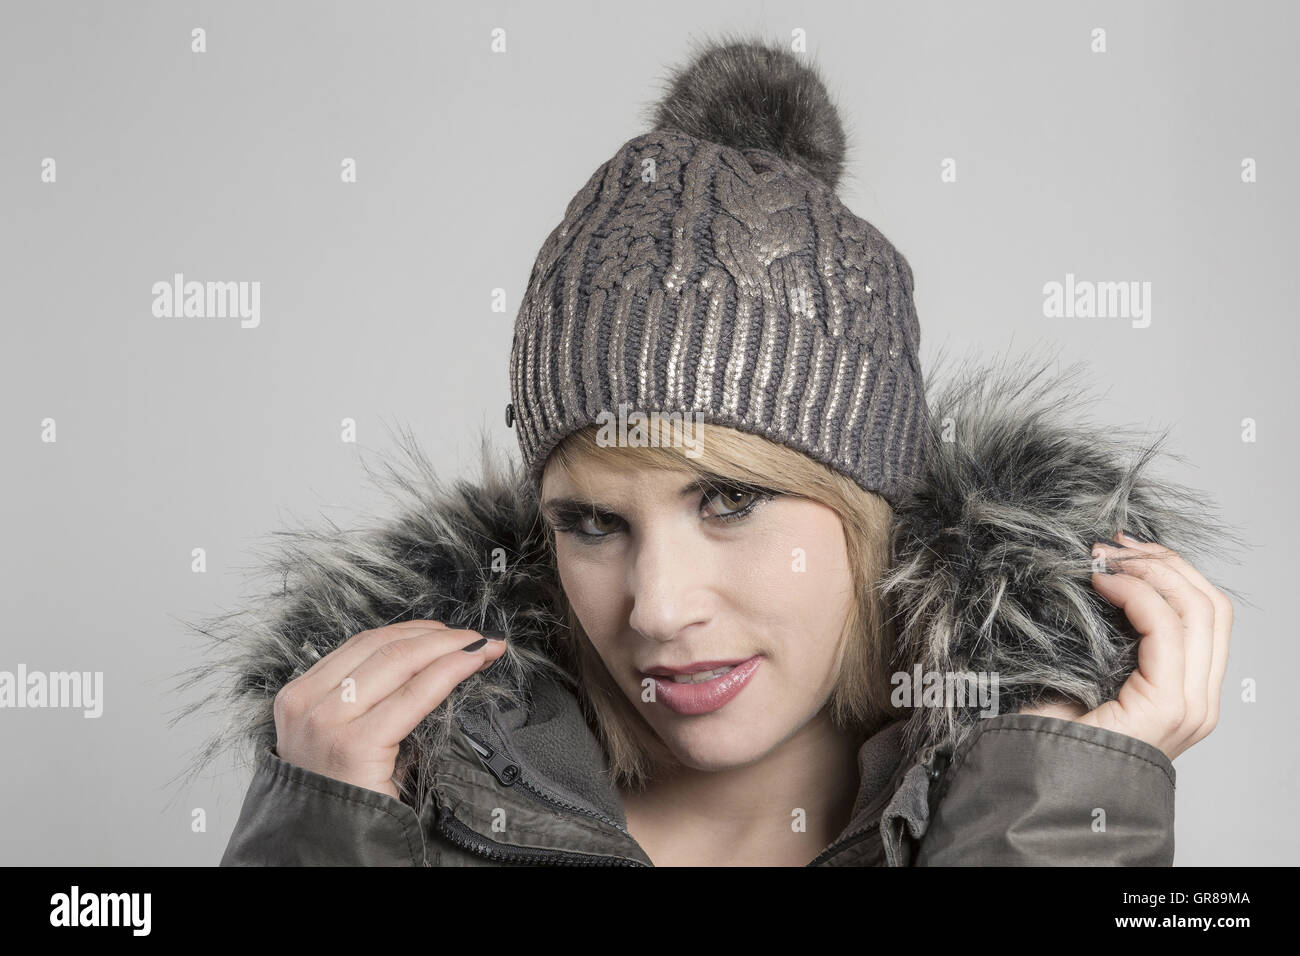 Portrait Shot Of A Young Woman With Blond Hair And Knitted Hat - Stock Image